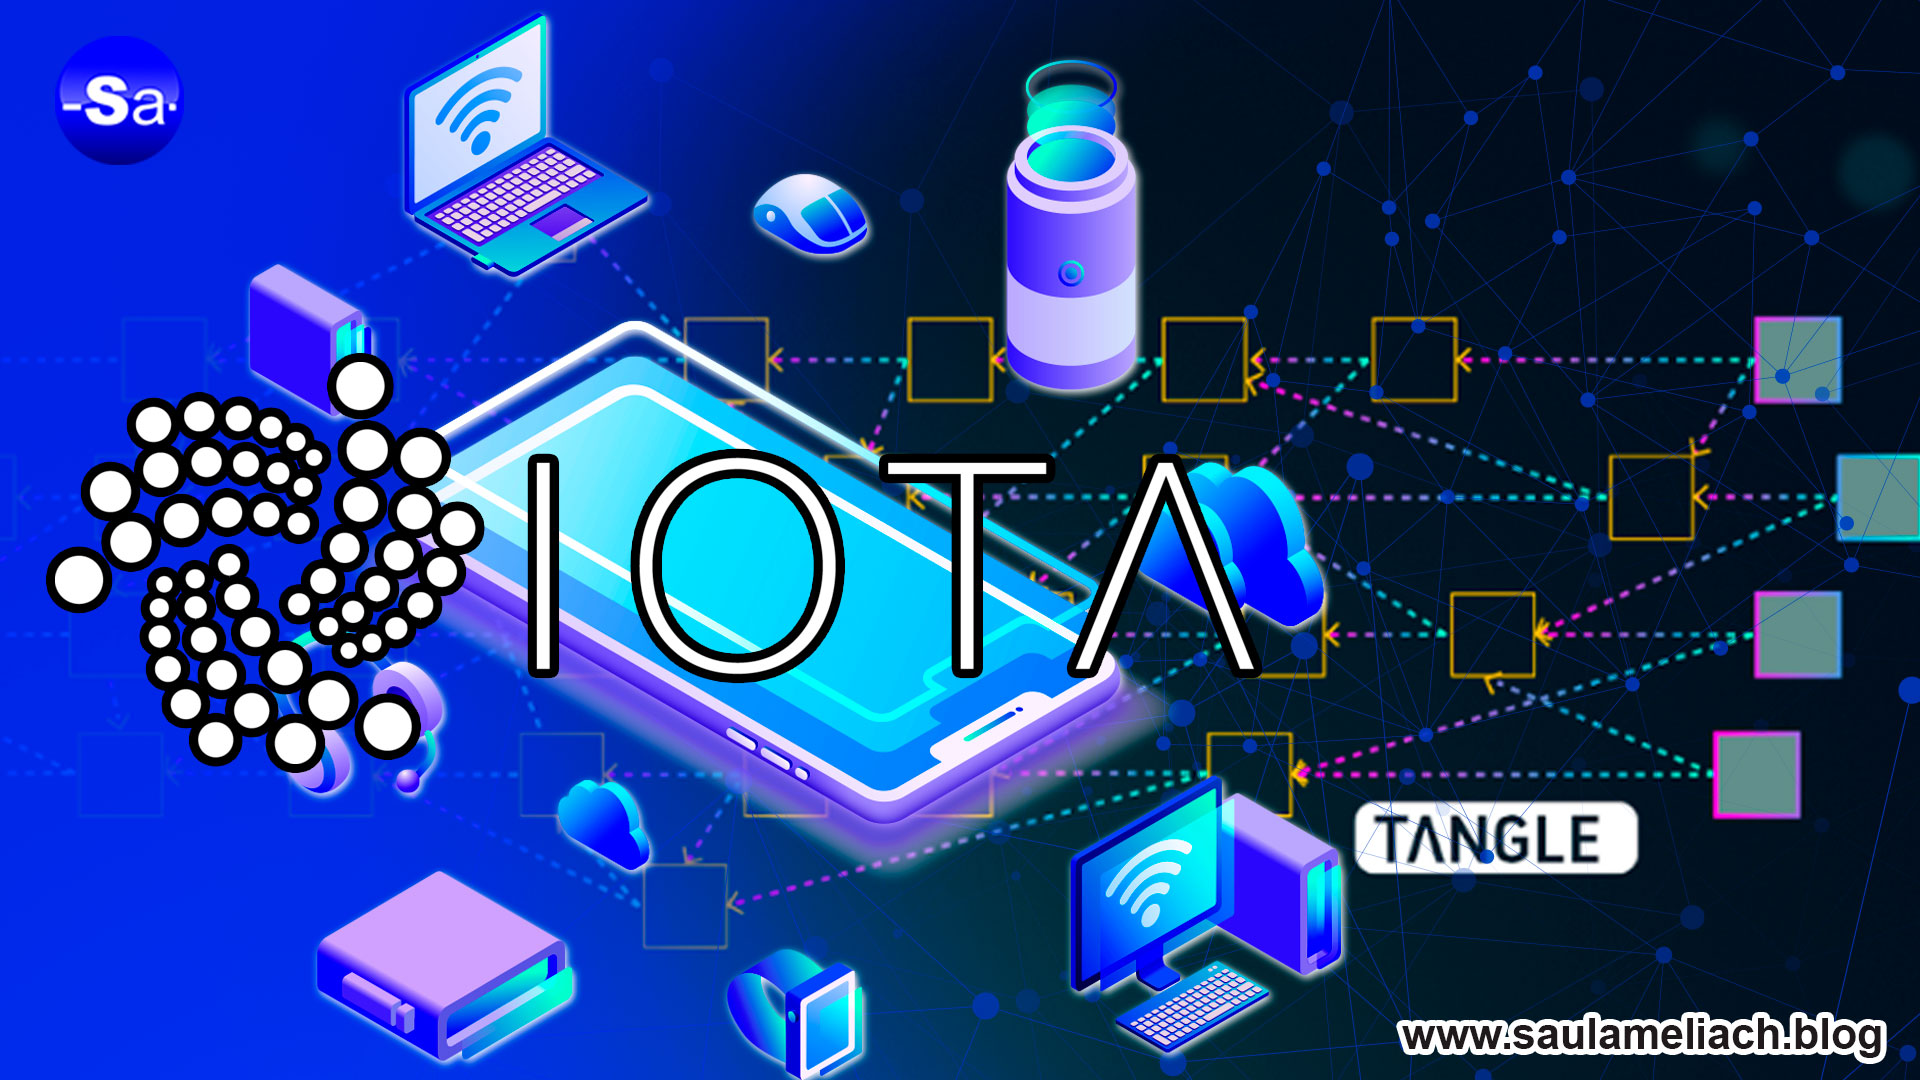 LATIN IOTA and IOTA TANGLE technology - Saul ameliach